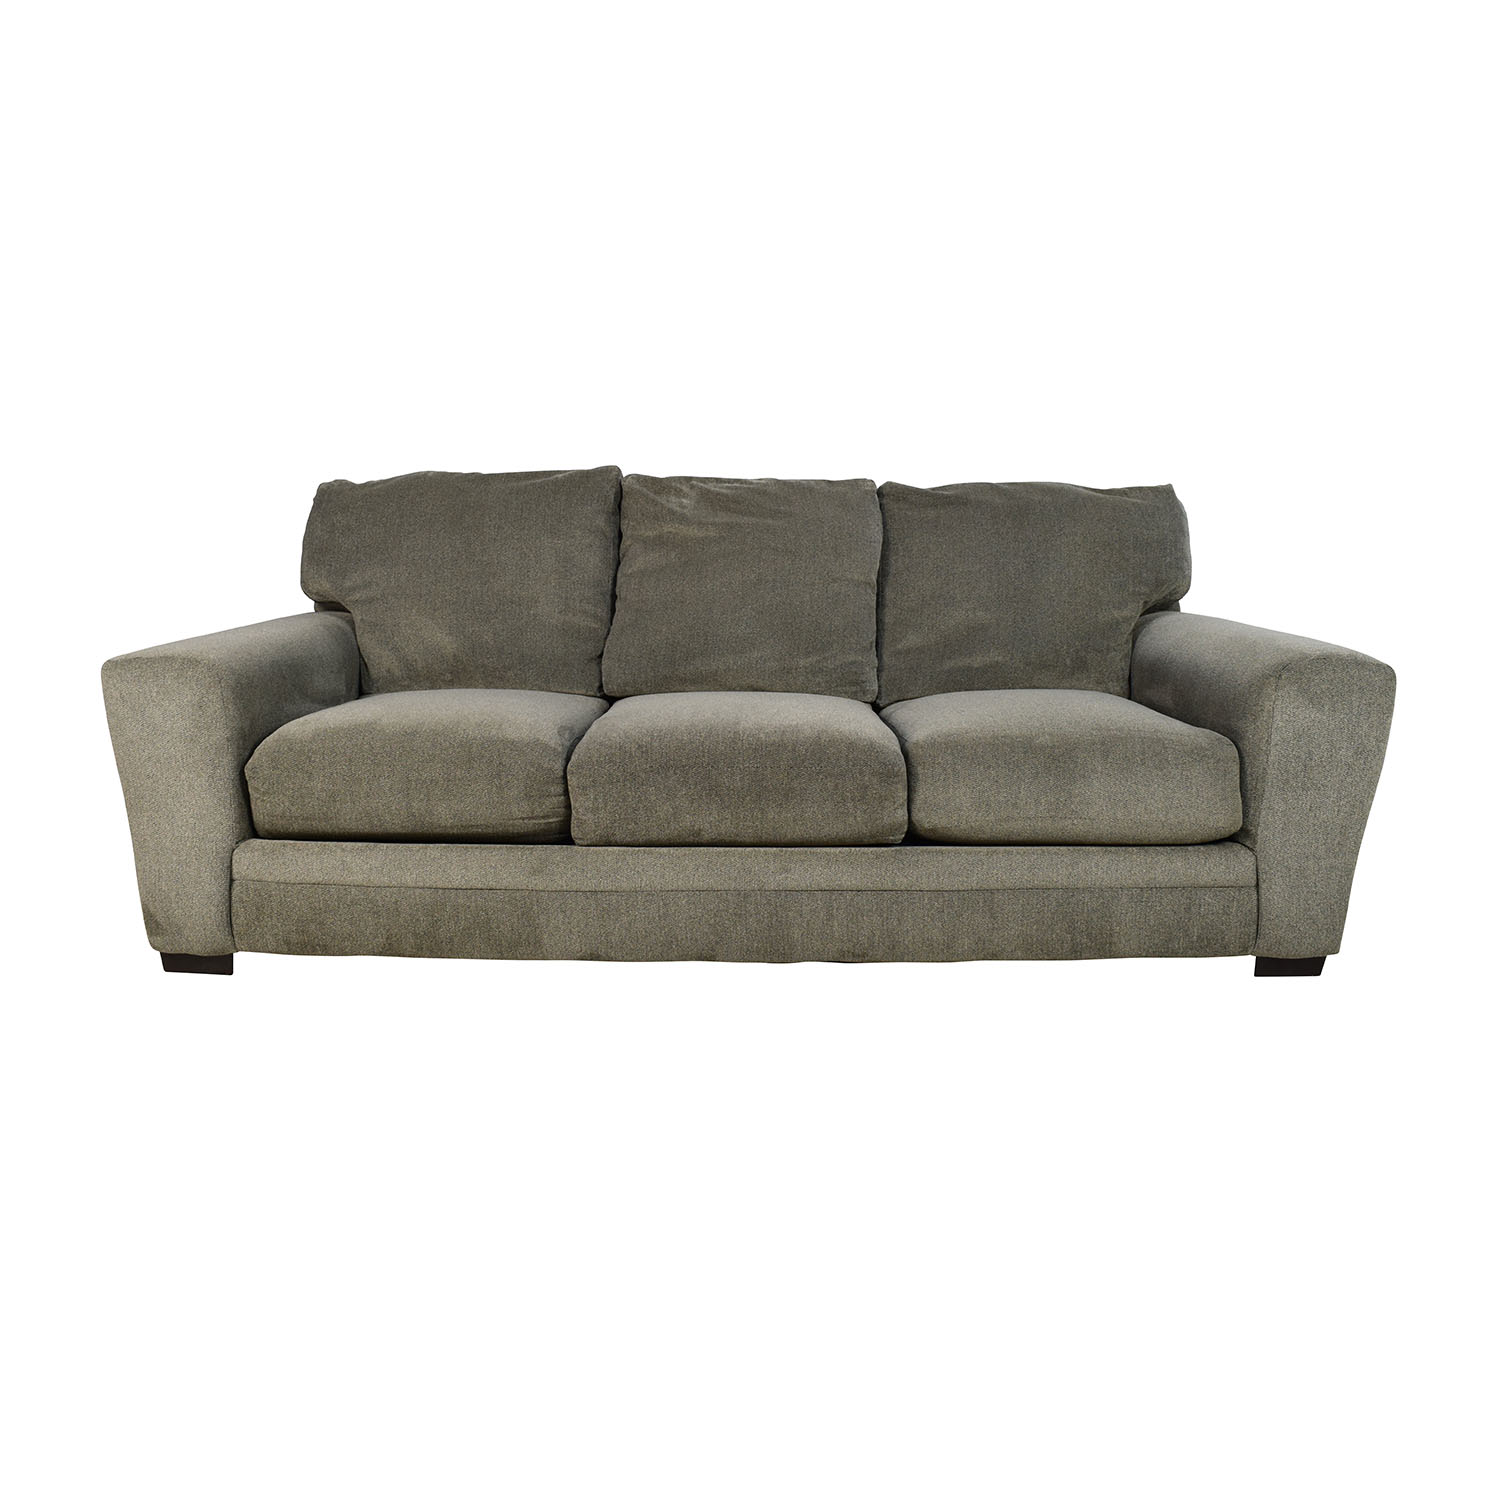 Bobs Furniture Gray Jackson Sofa Clic Sofas